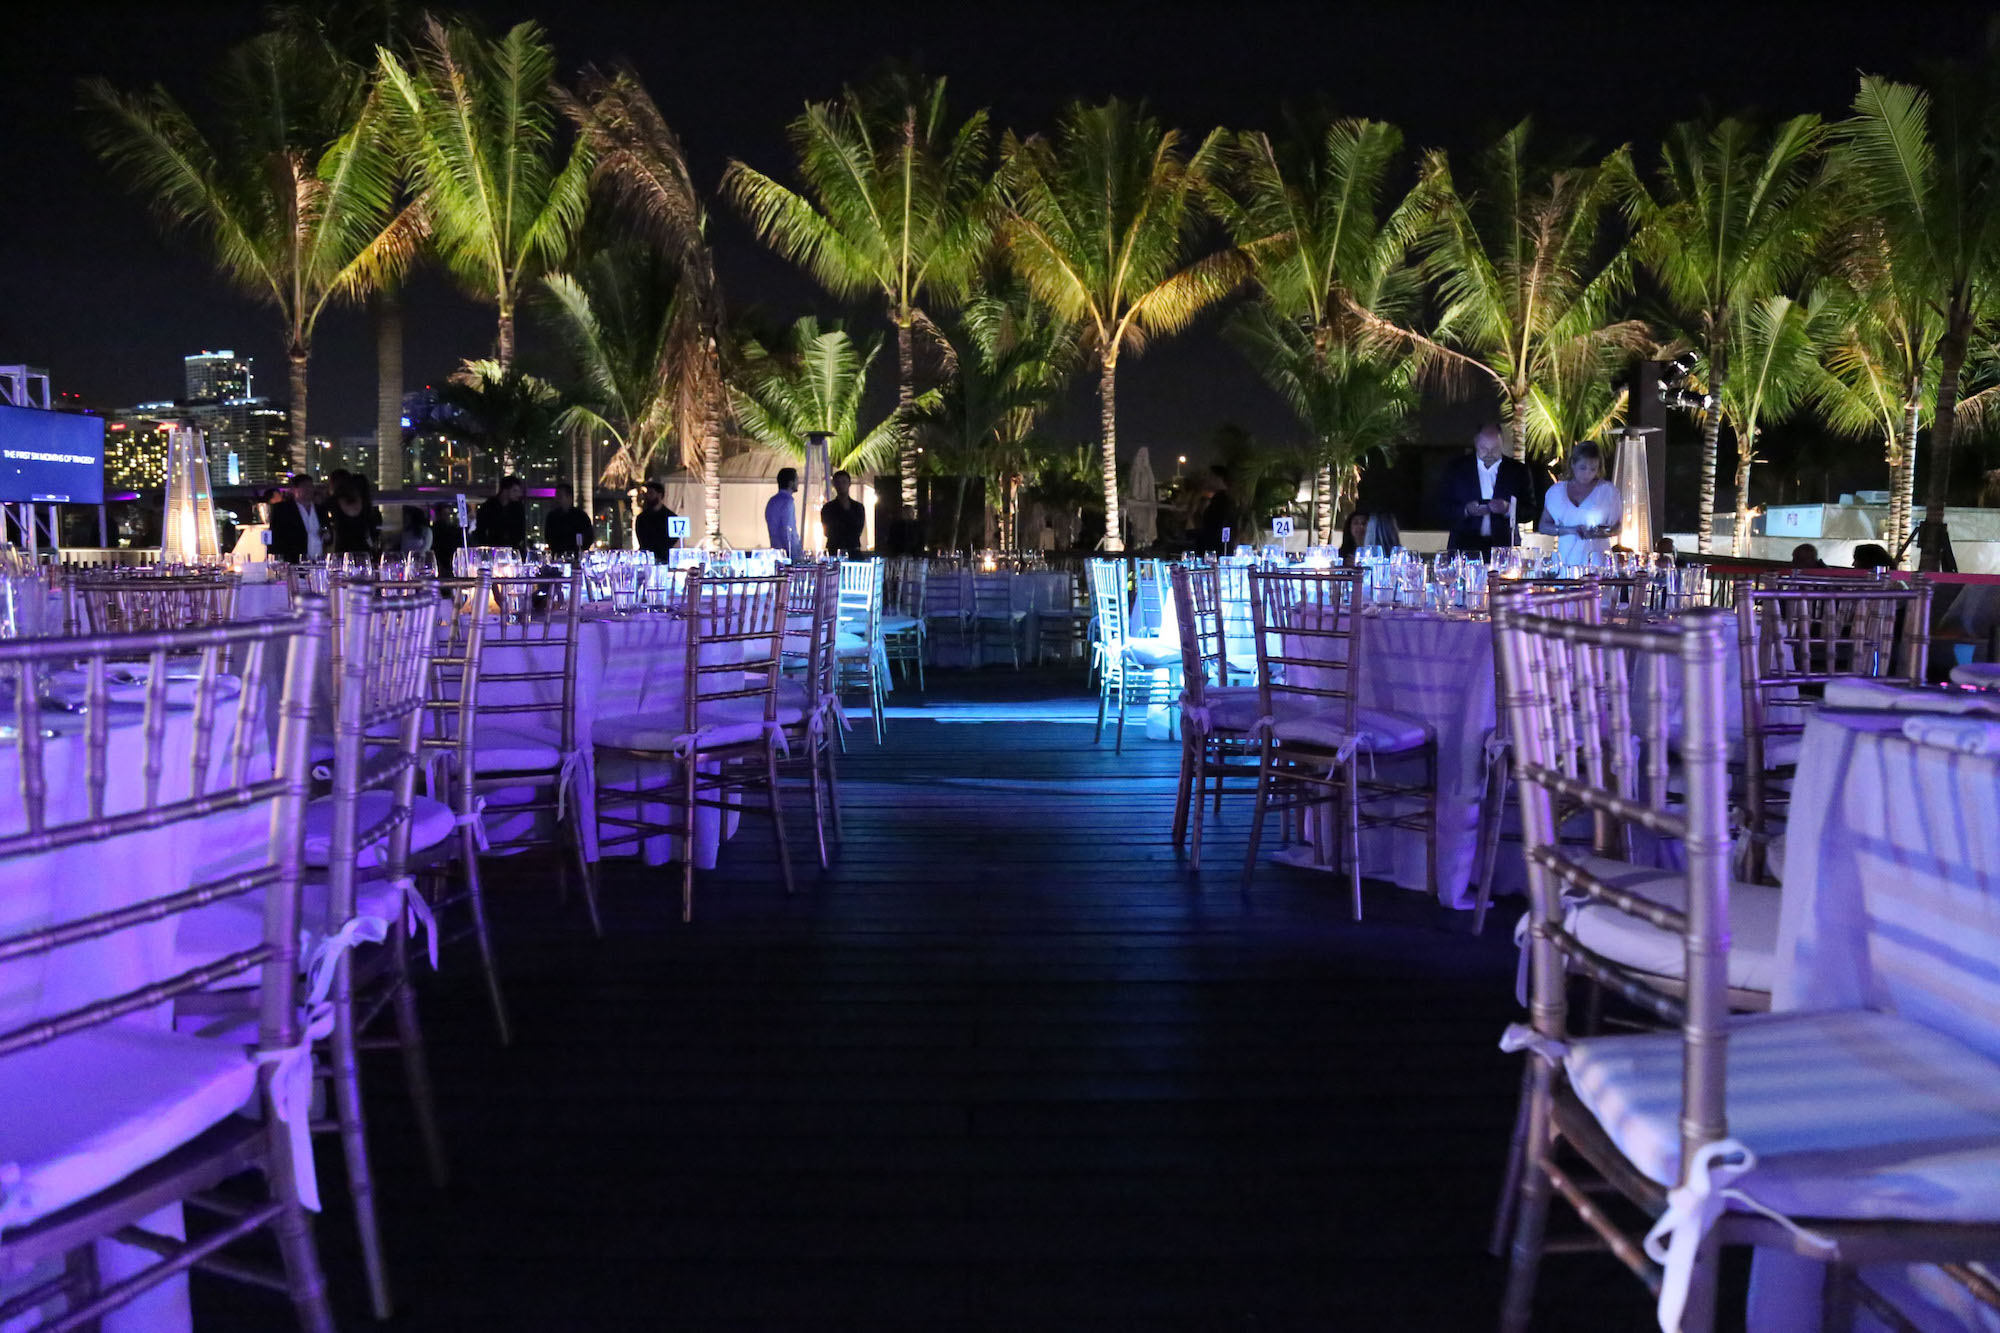 night photo of trees and tables for event space